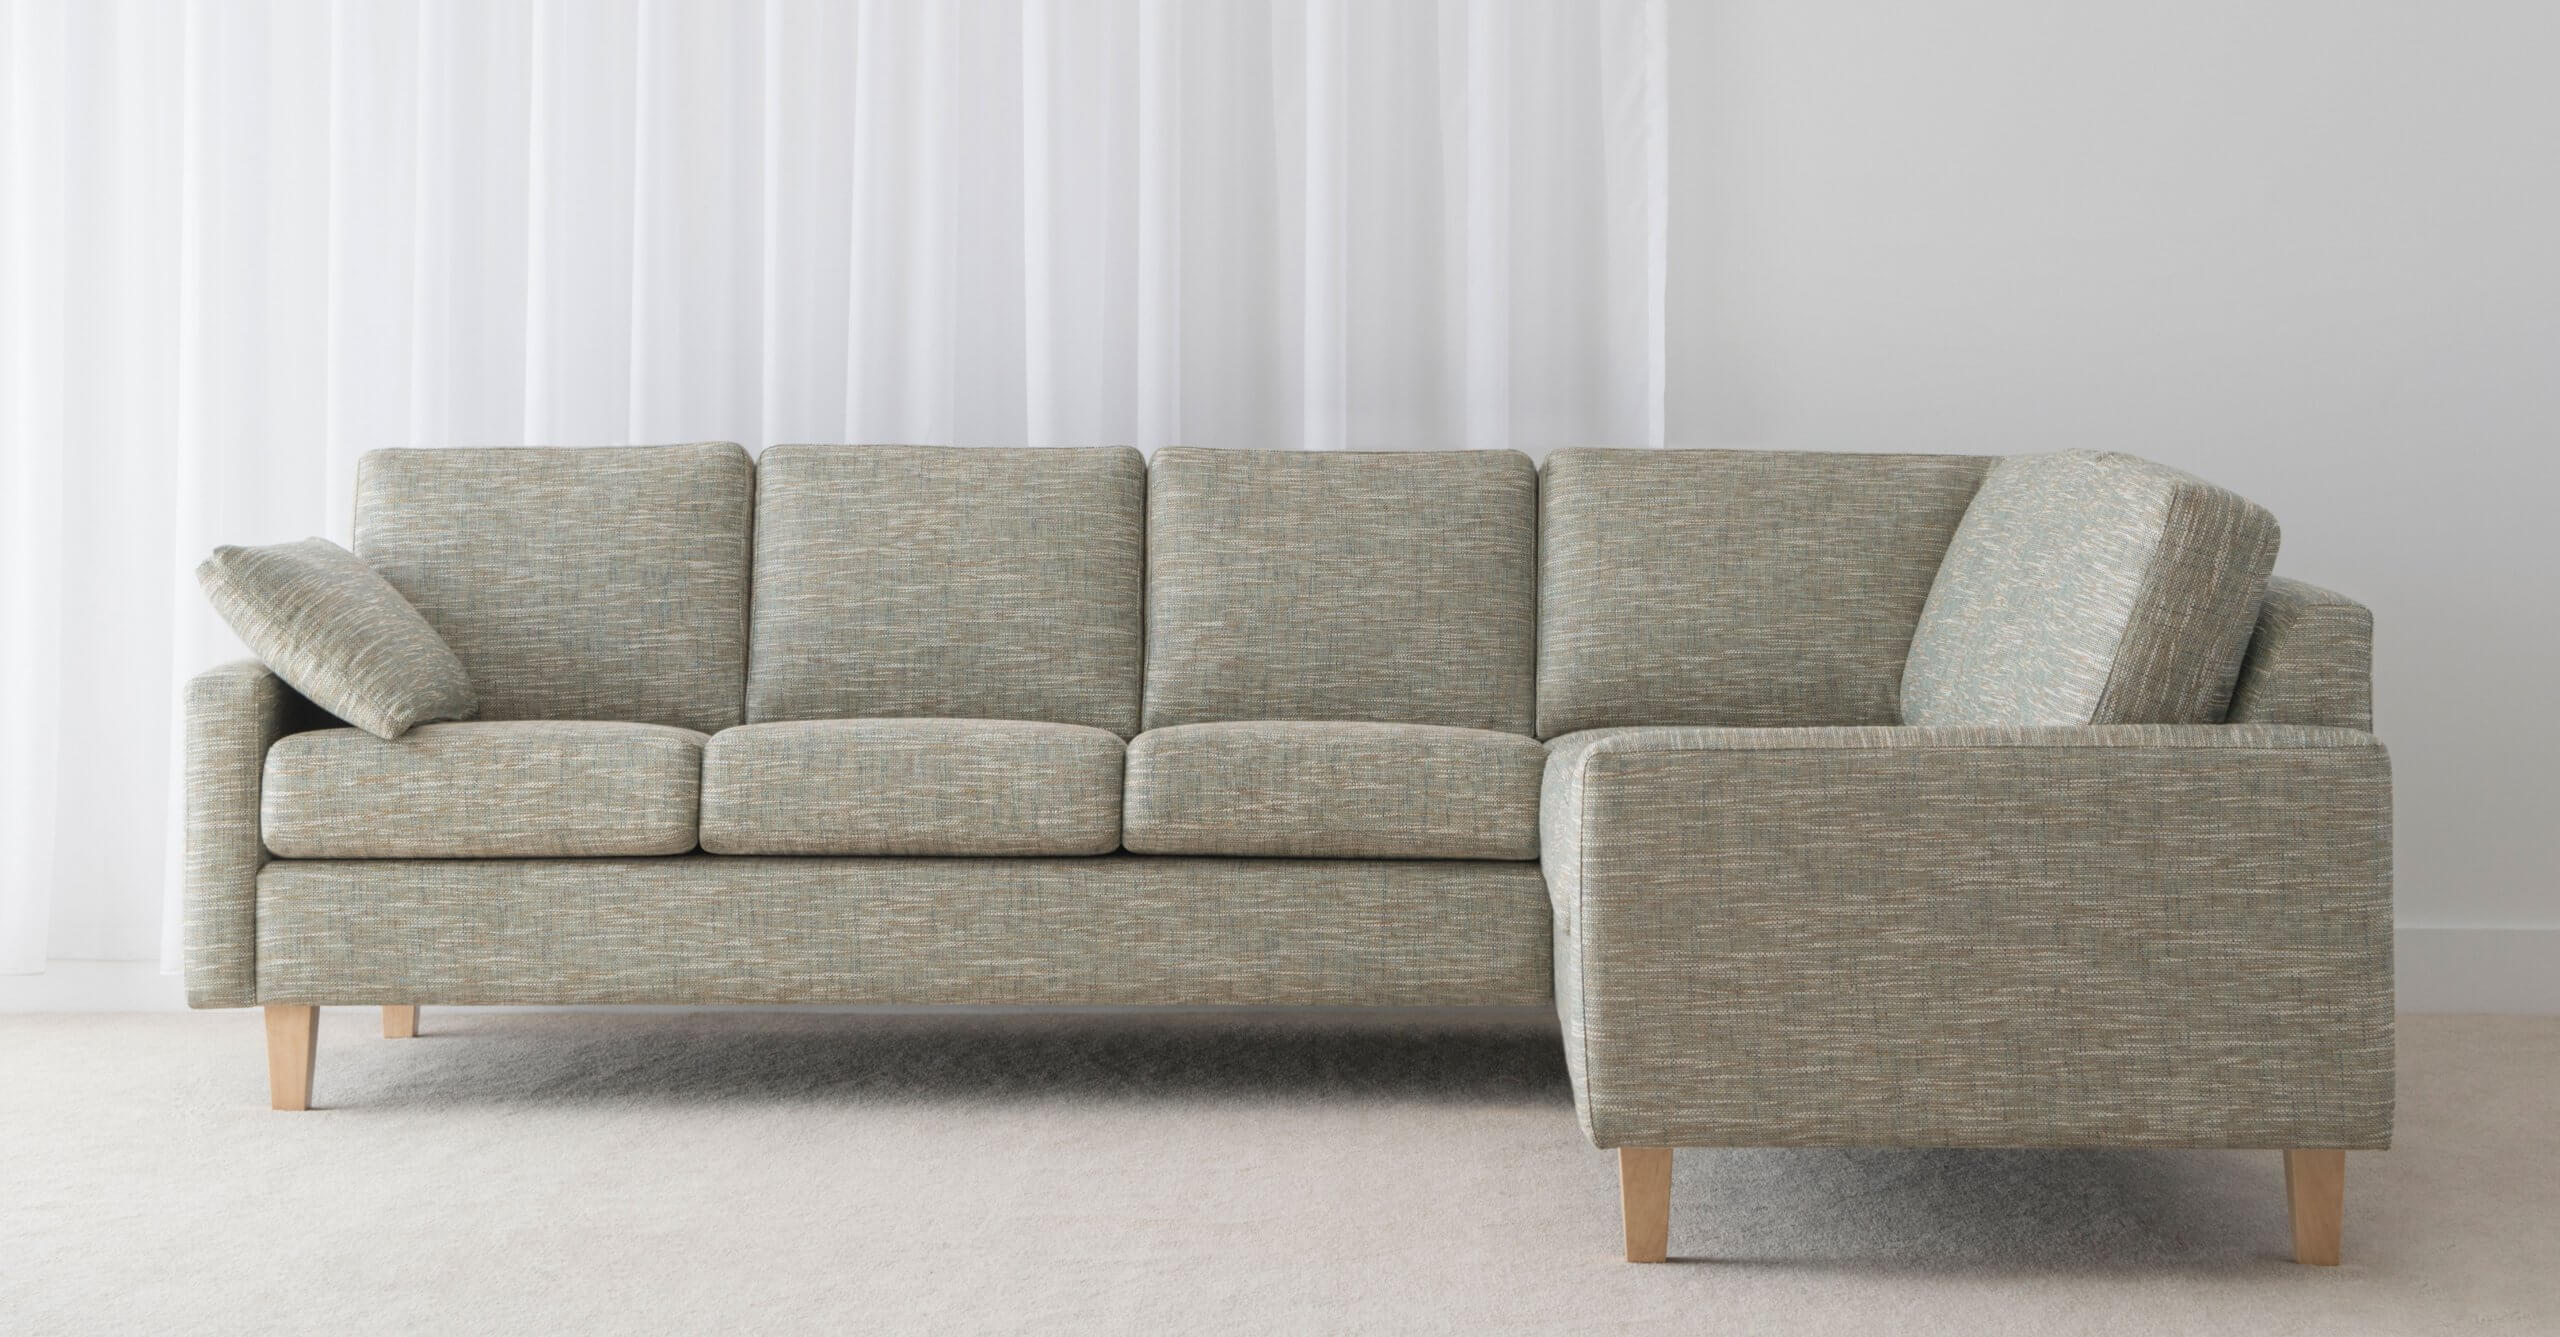 fabric modular lounge with arm rests